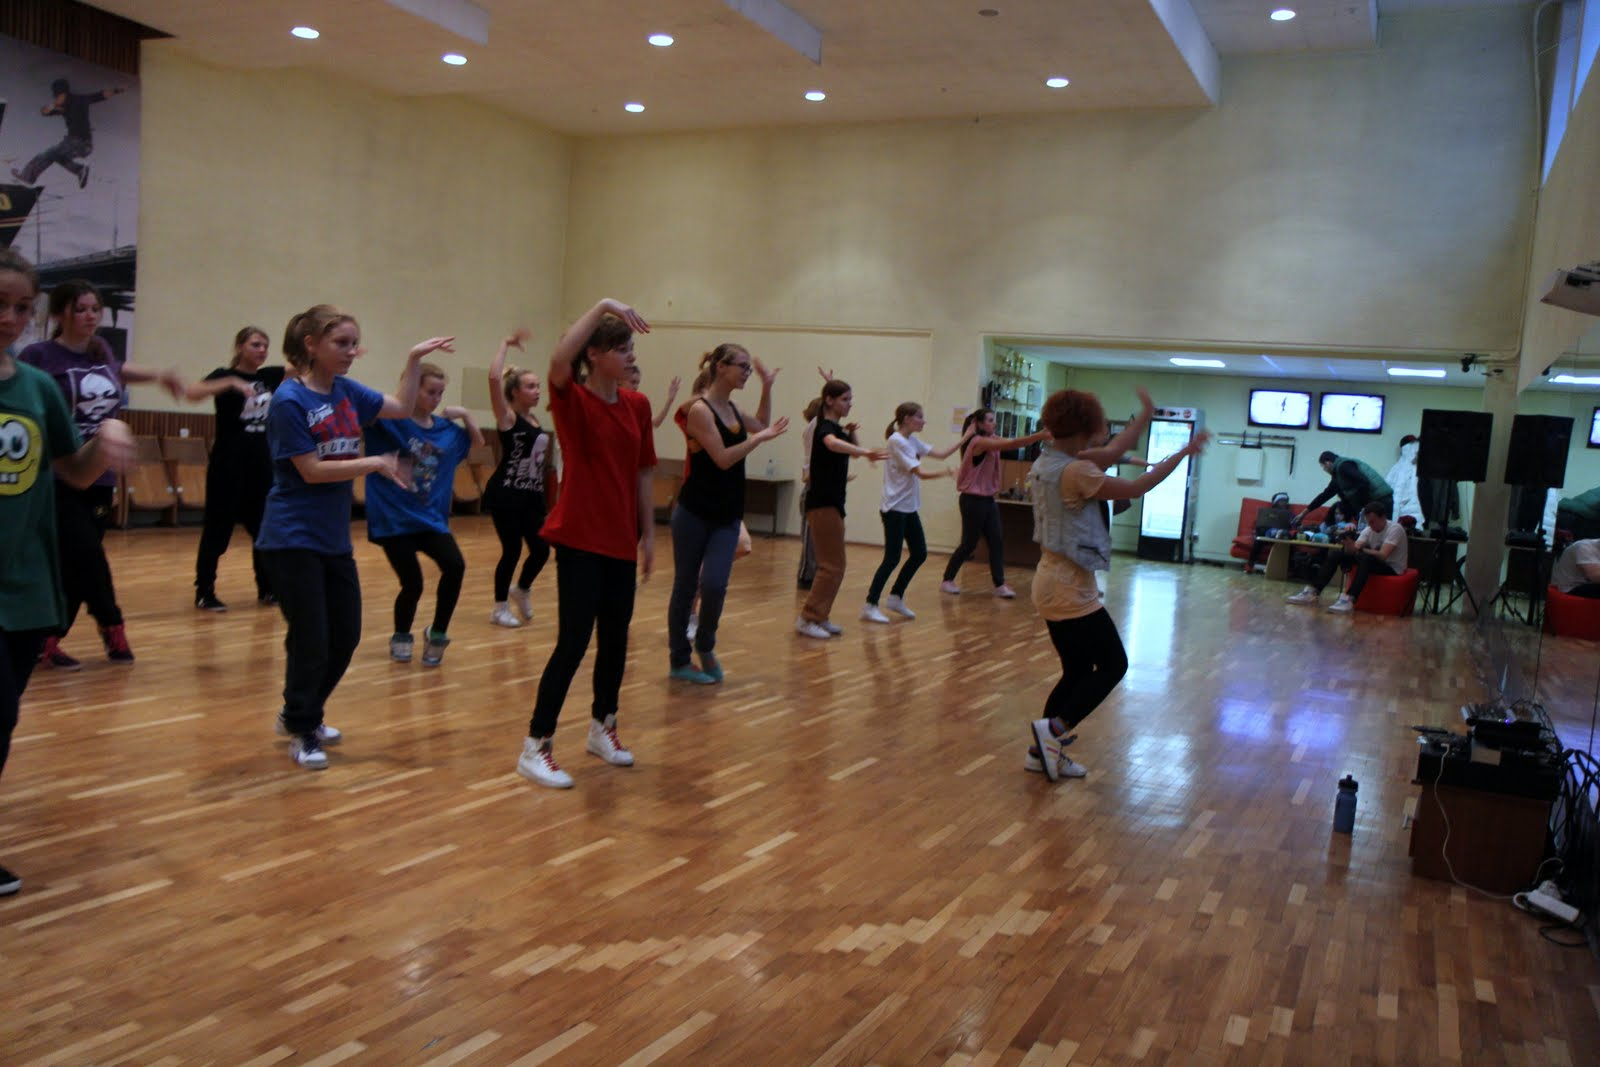 Waacking workshop with Nastya (LV) - IMG_2068.JPG